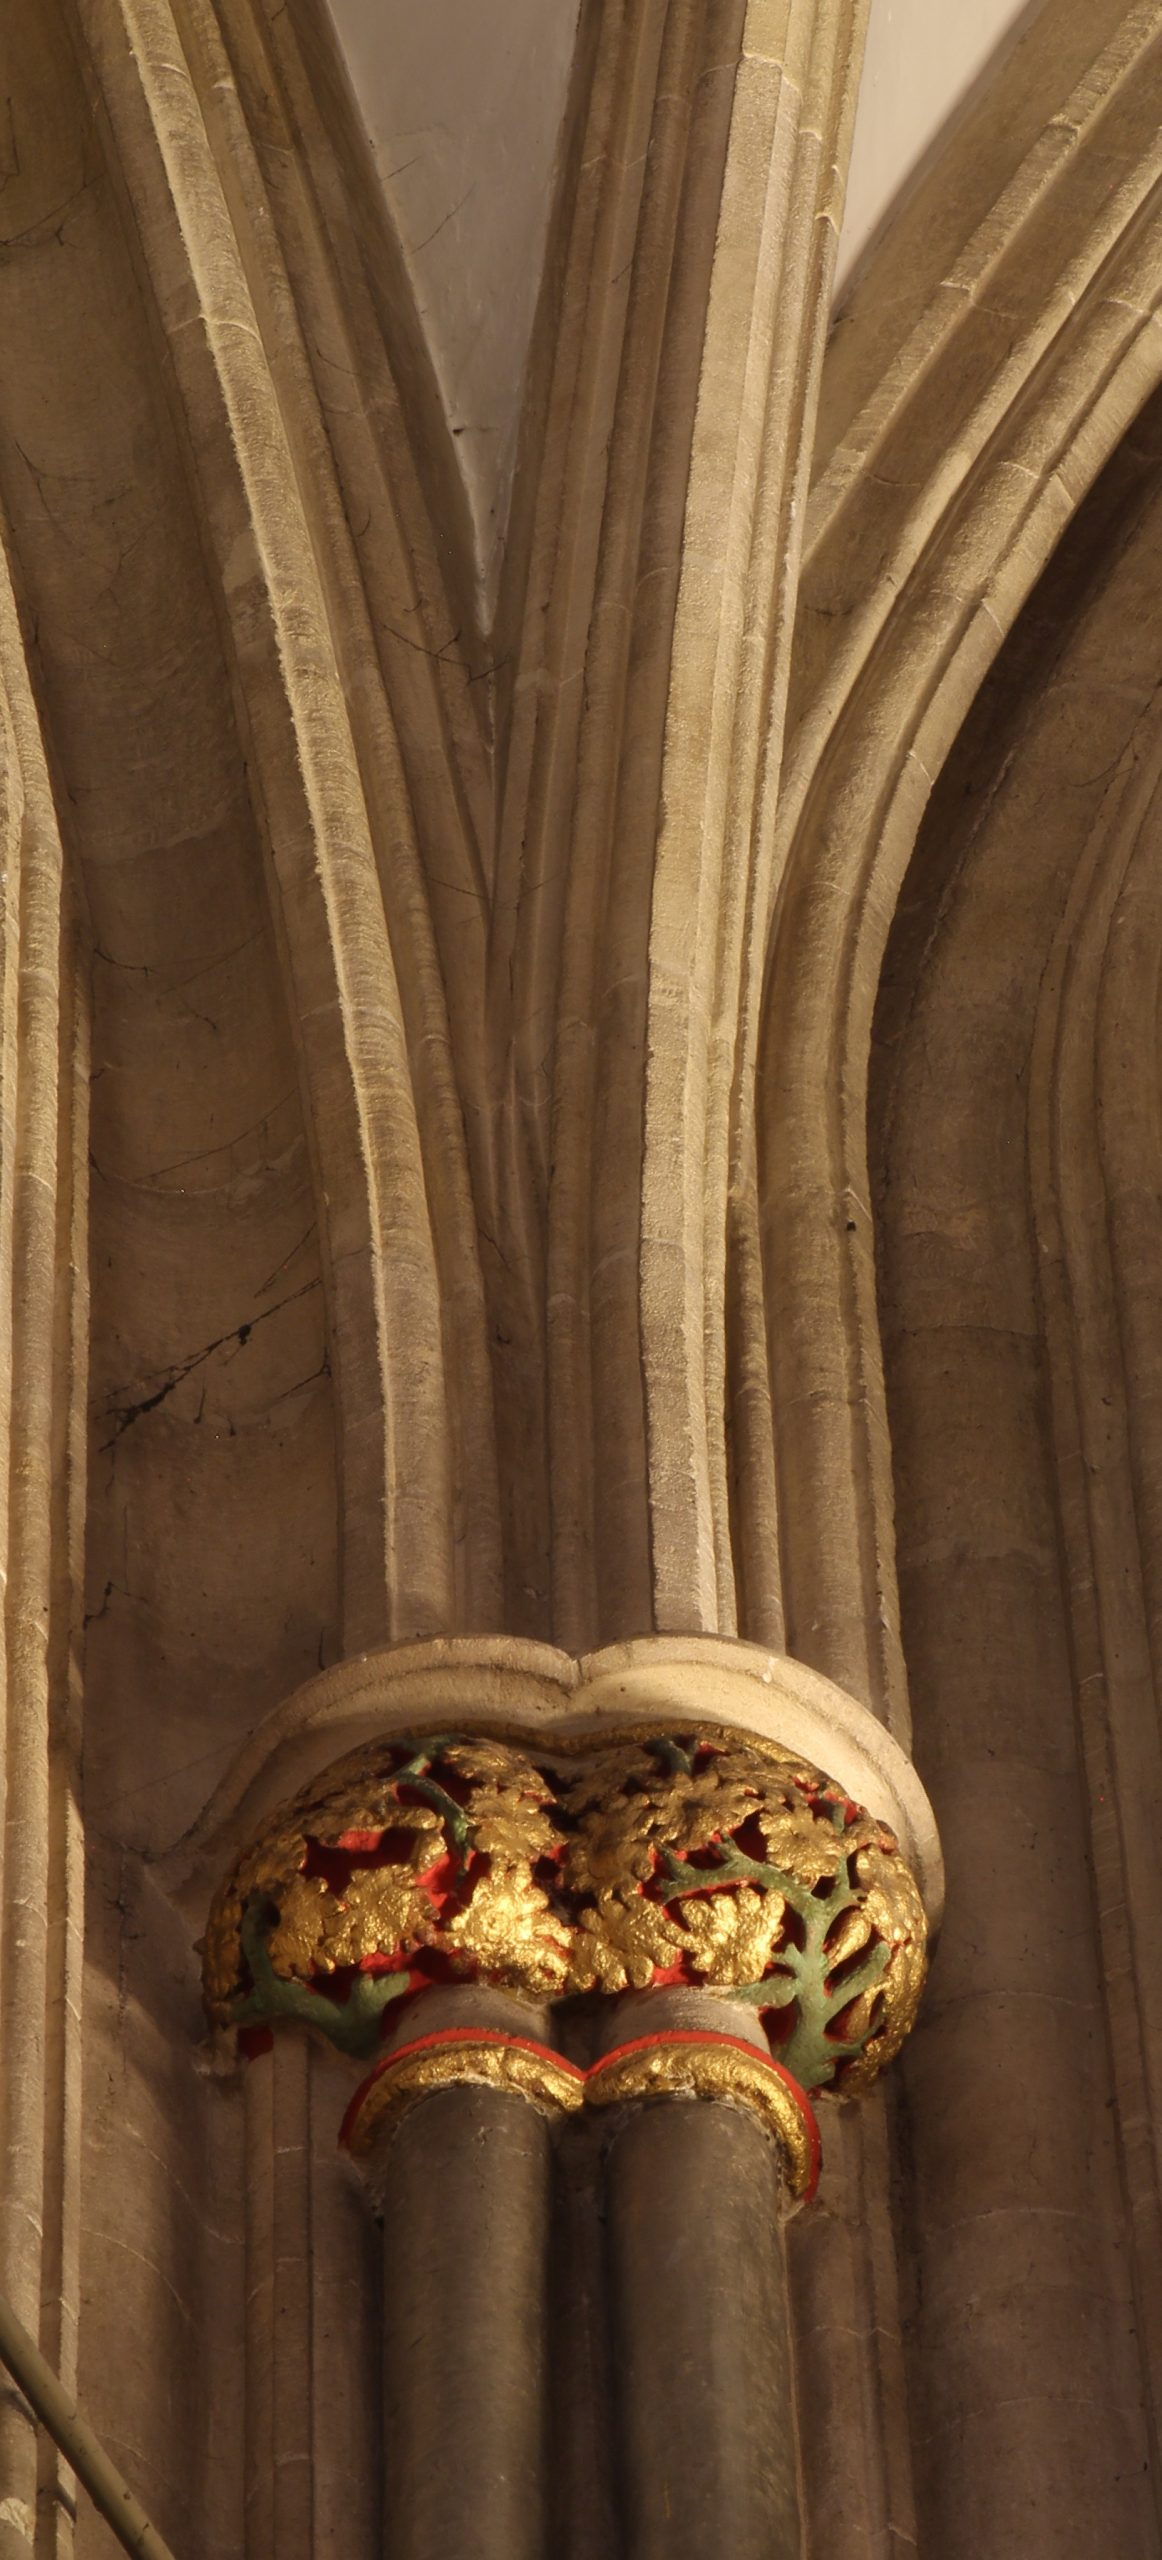 Image of stilting at the base of the ribs in the choir vault at Wells Cathedral